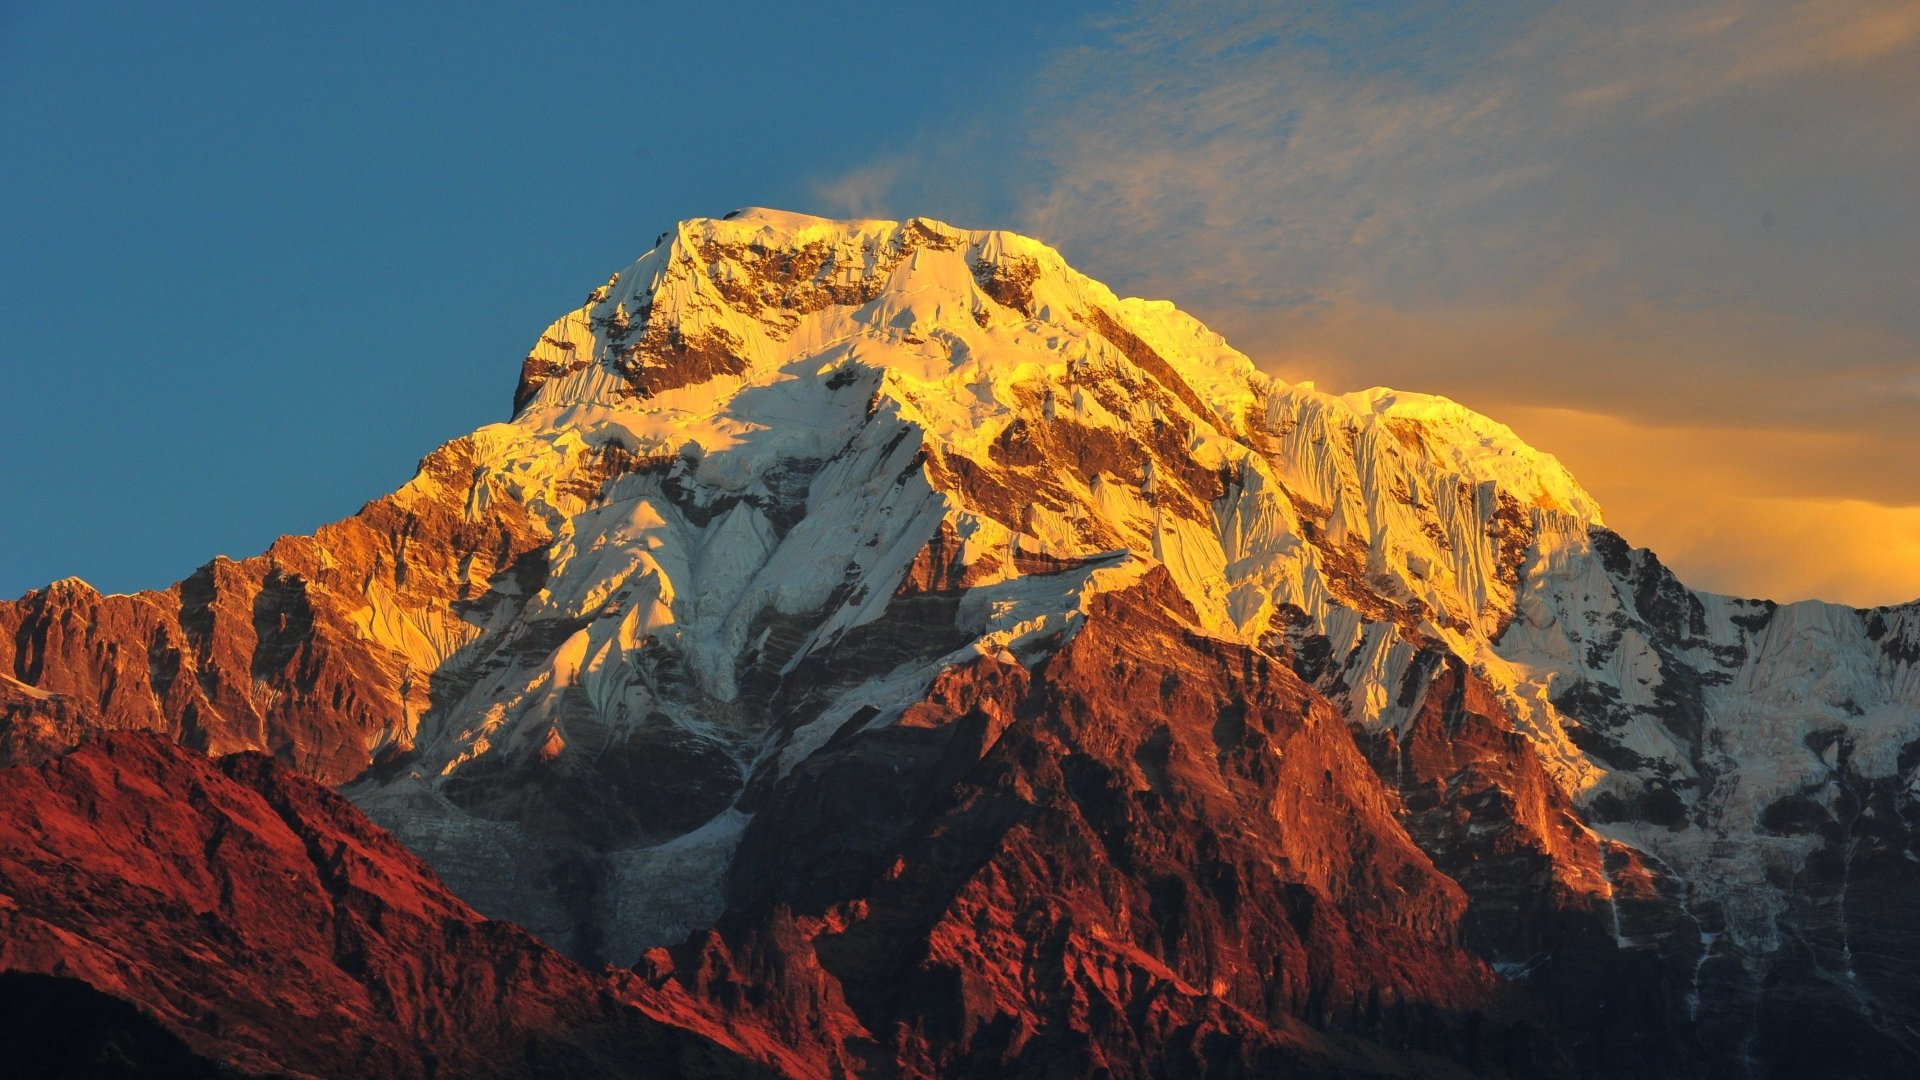 11 Mount Everest Hd Wallpapers Background Images Wallpaper Abyss